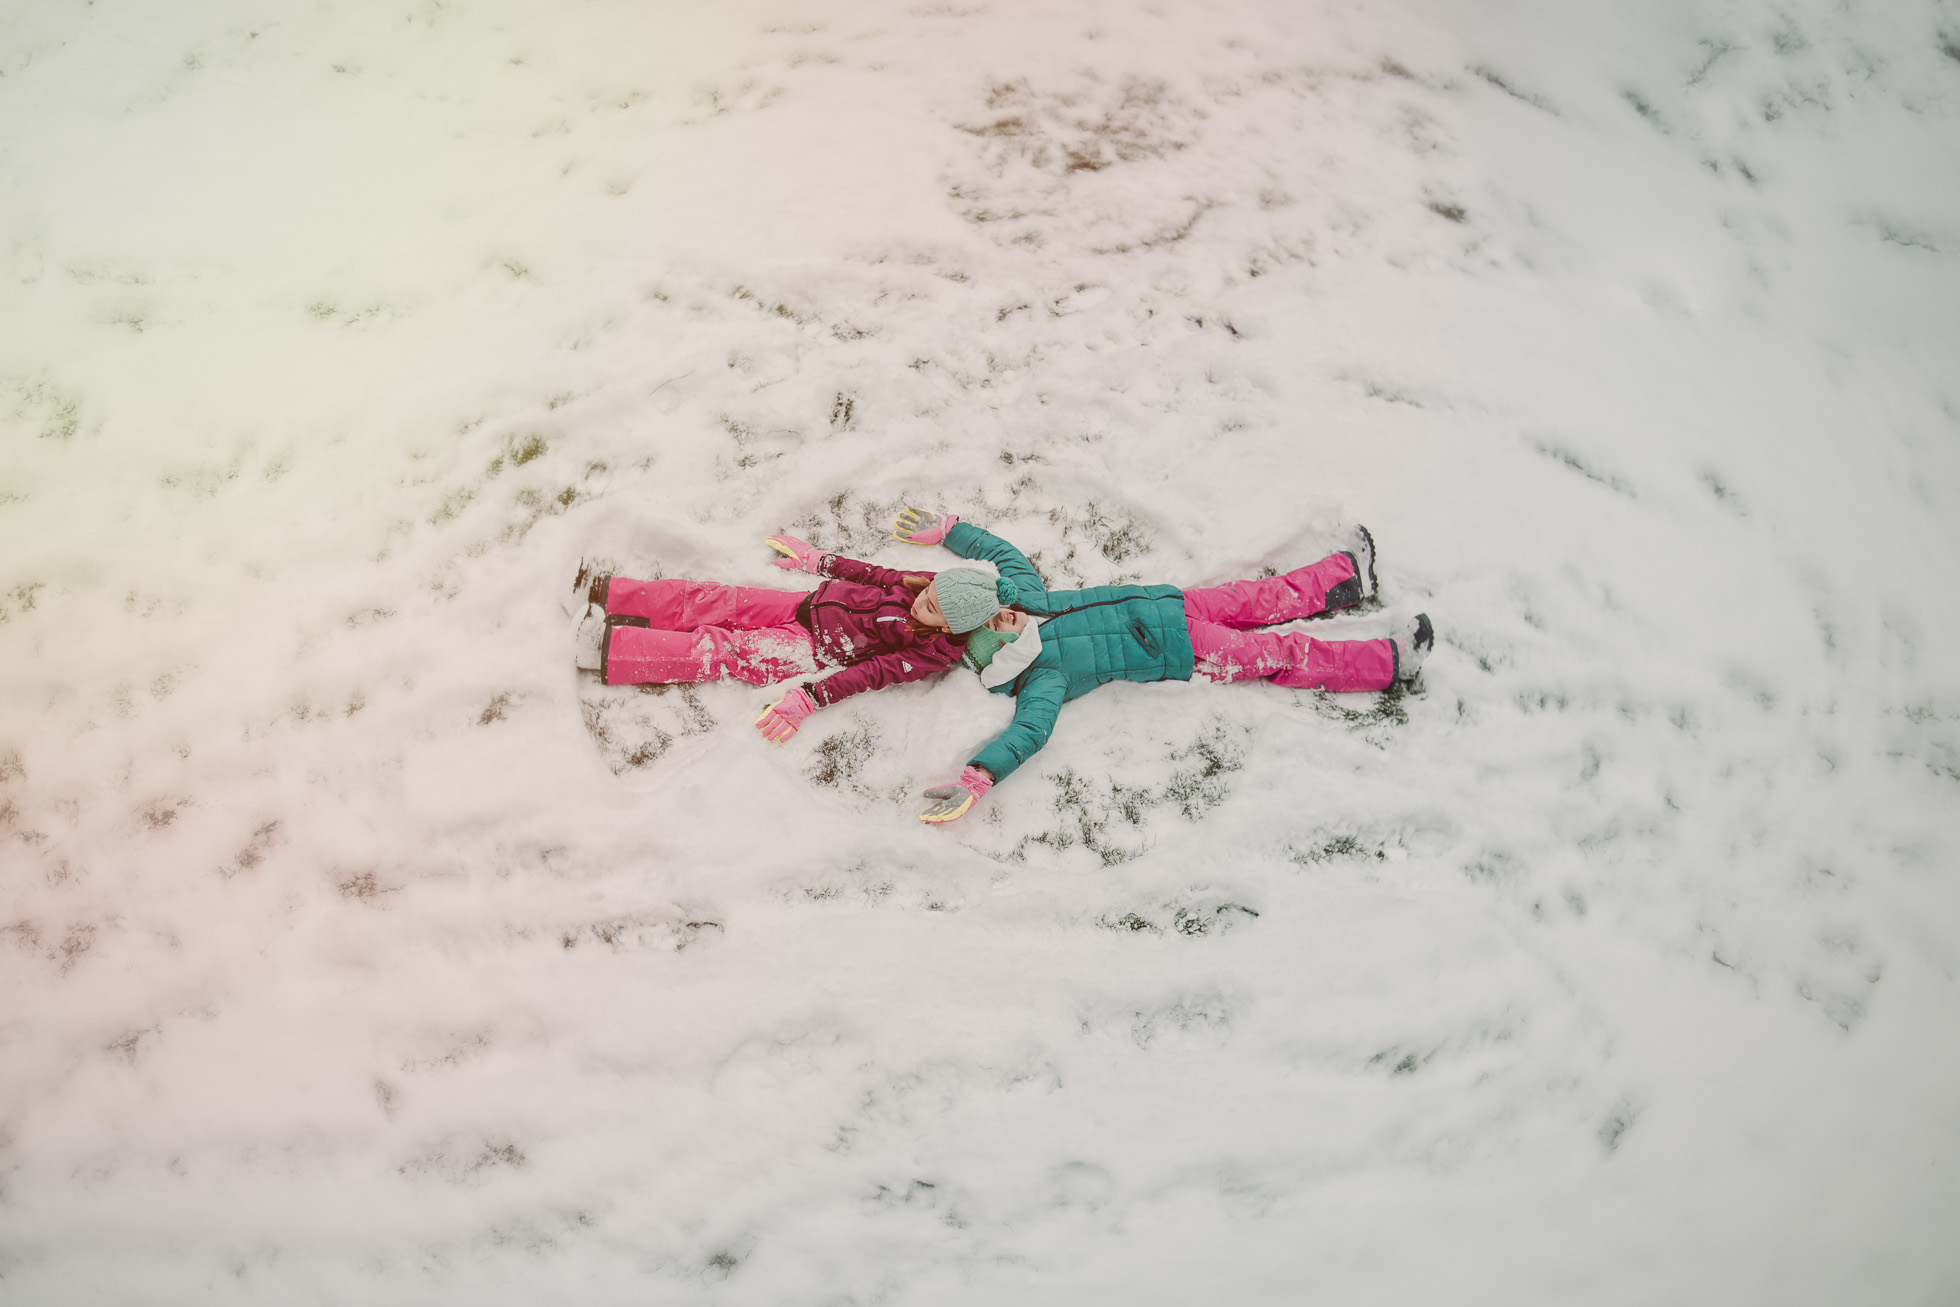 girls play in snow making snow angels